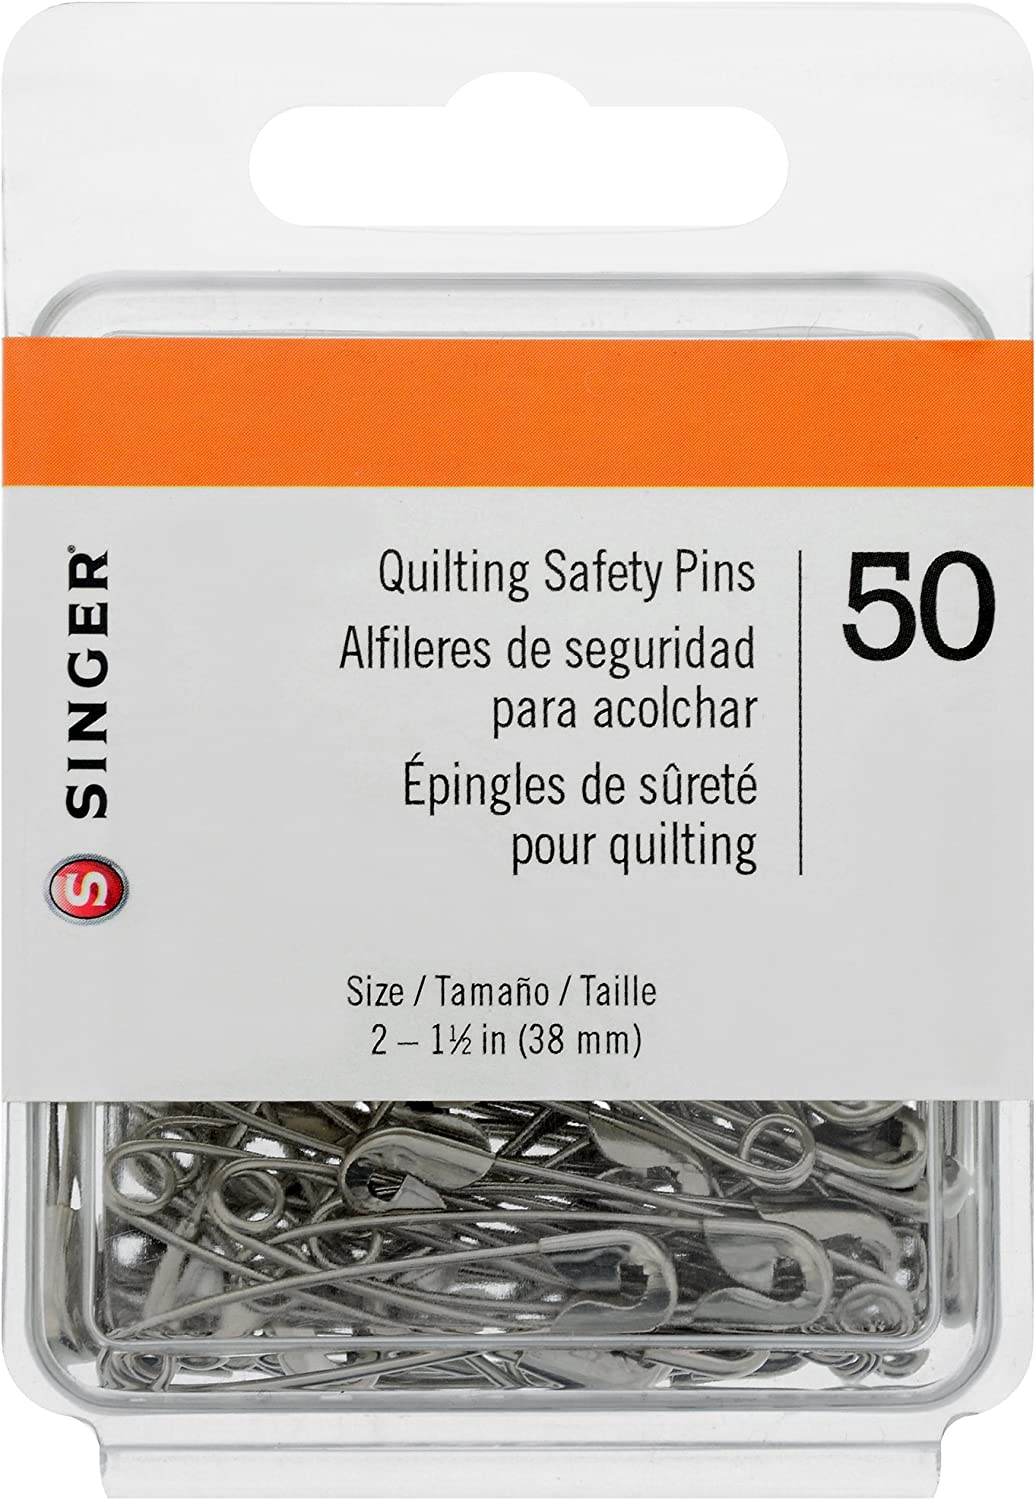 SINGER 00206 Quilting and Craft Safety Pins Size 3 20-Count